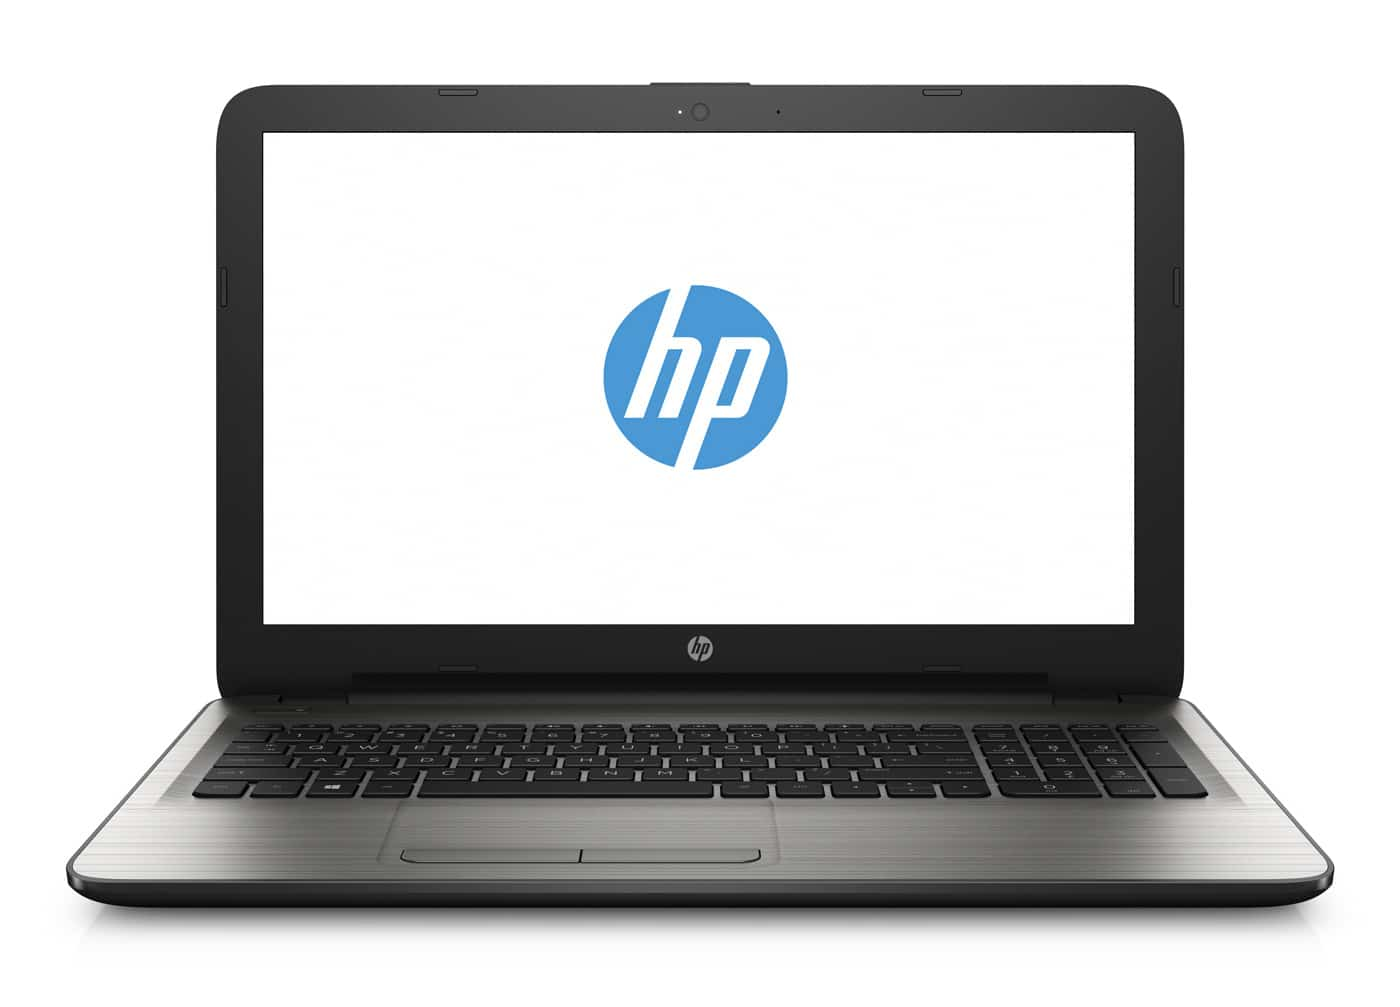 HP 15-ay123nf, PC portable 15 pouces Full HD mat Core i5 Kaby R5 promo 529€